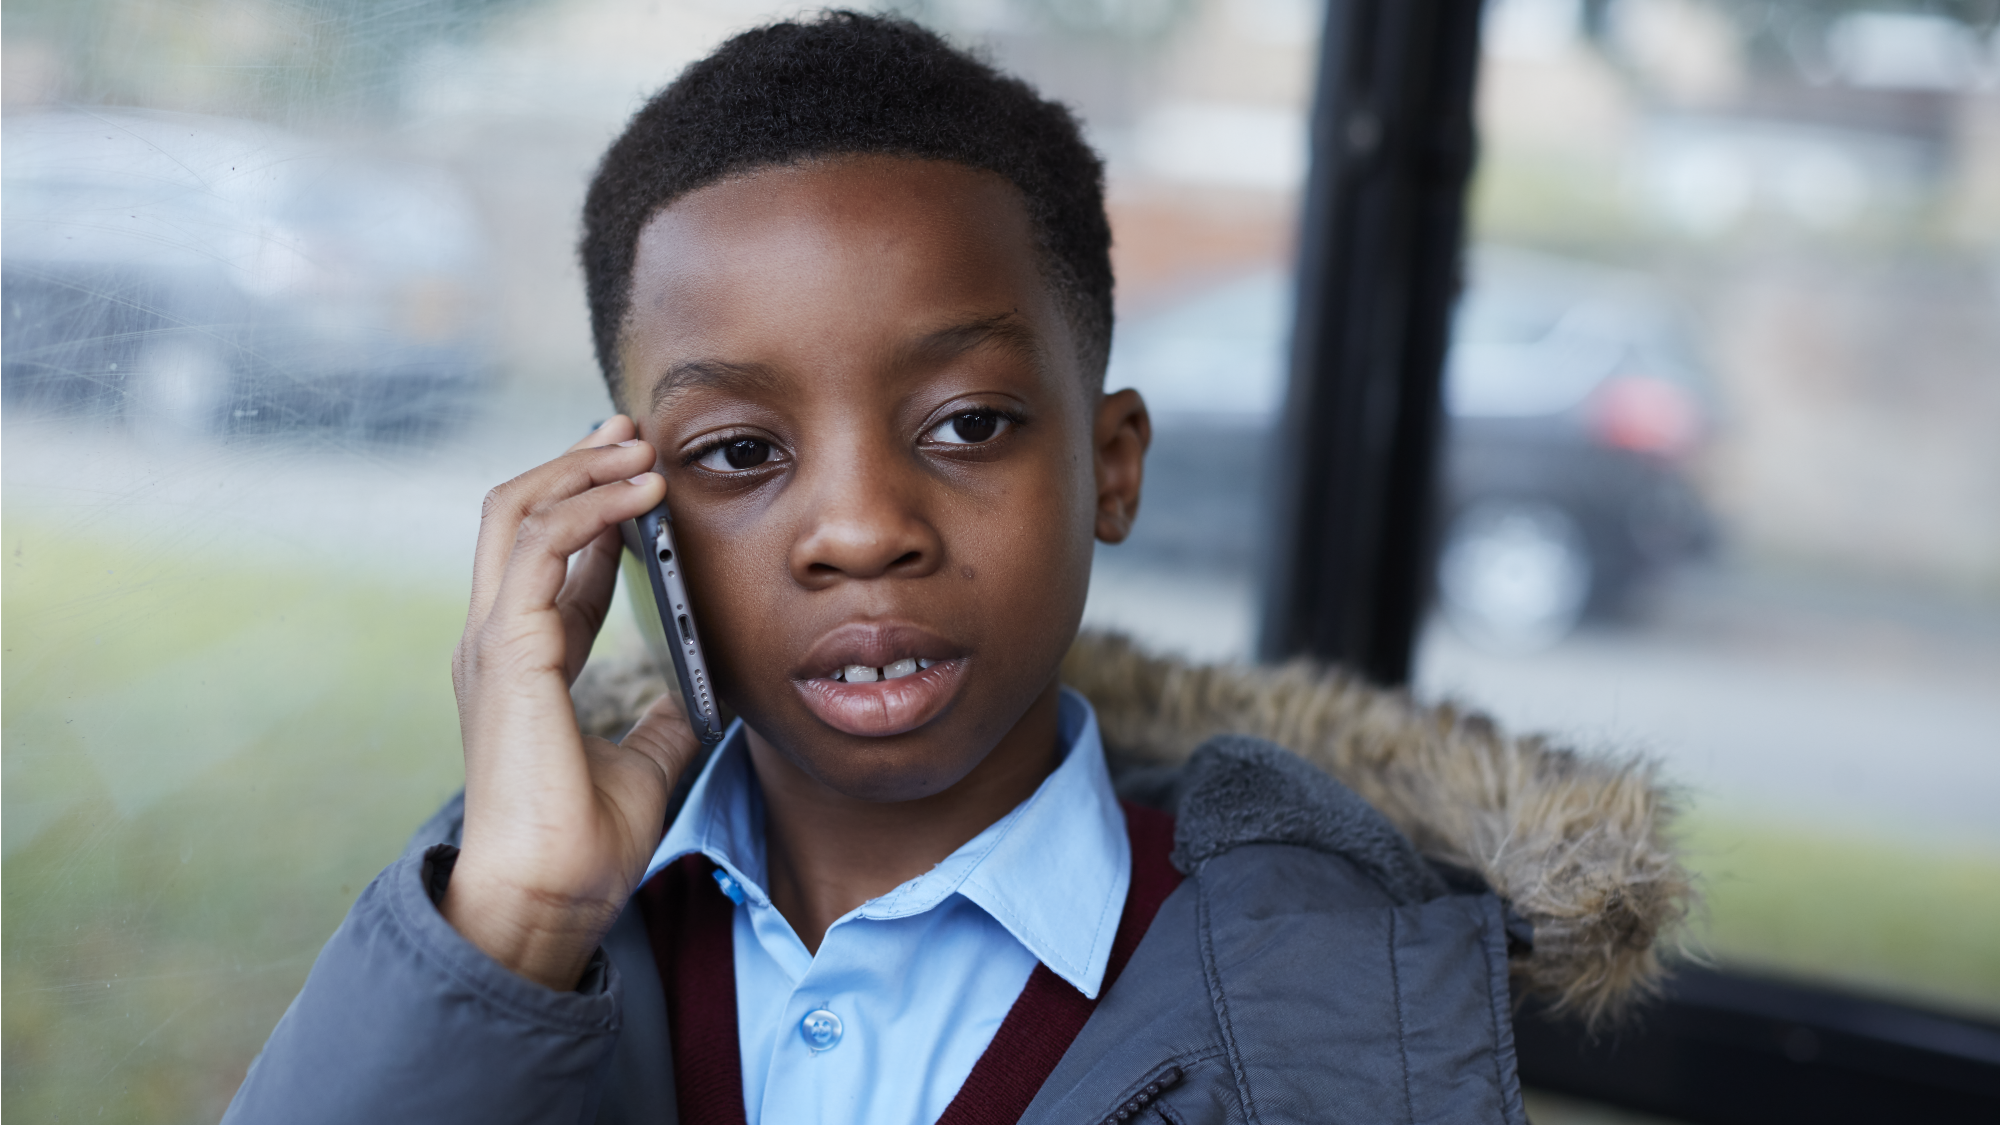 Young boy on phone sitting in bus stop